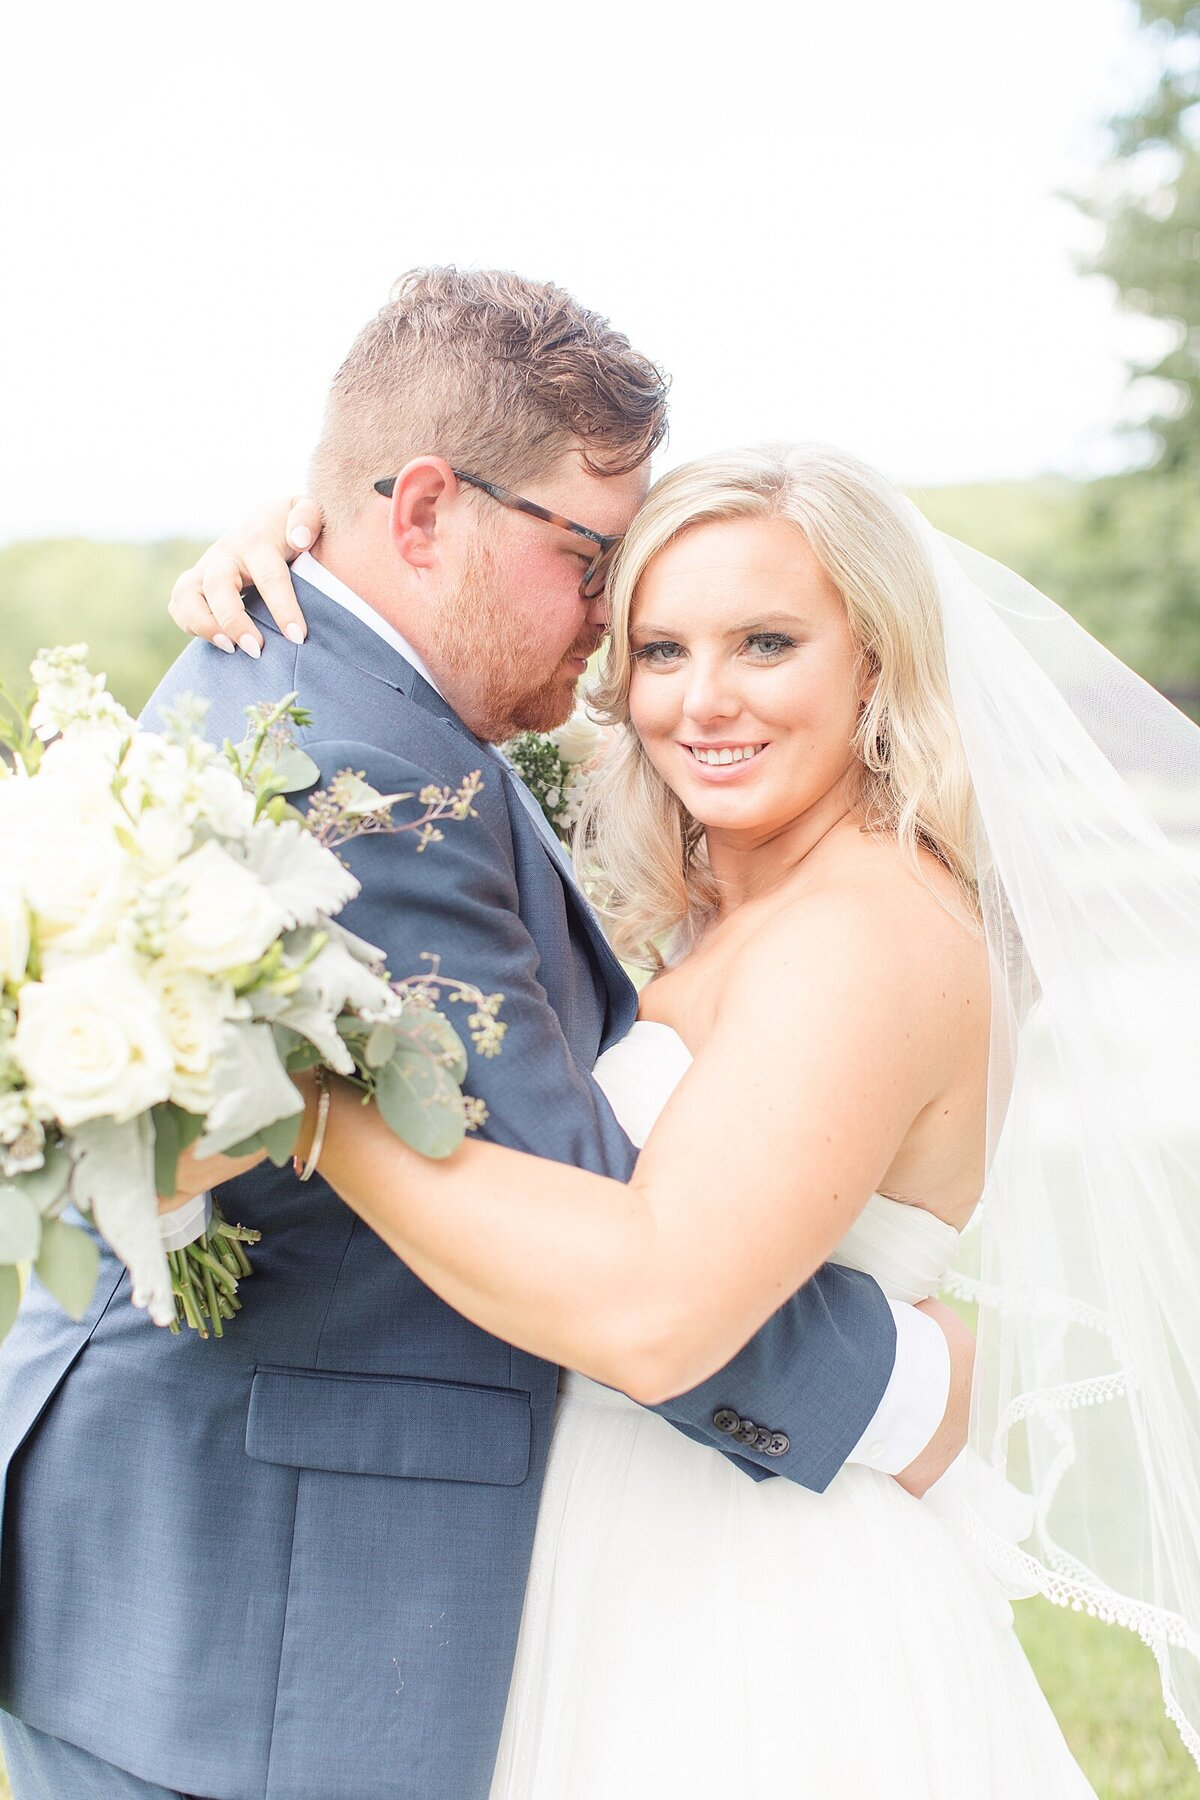 Kara Webster Photography | Mac & Maggie | Bradshaw-Duncan House Louisville, KY Wedding Photographer_0032